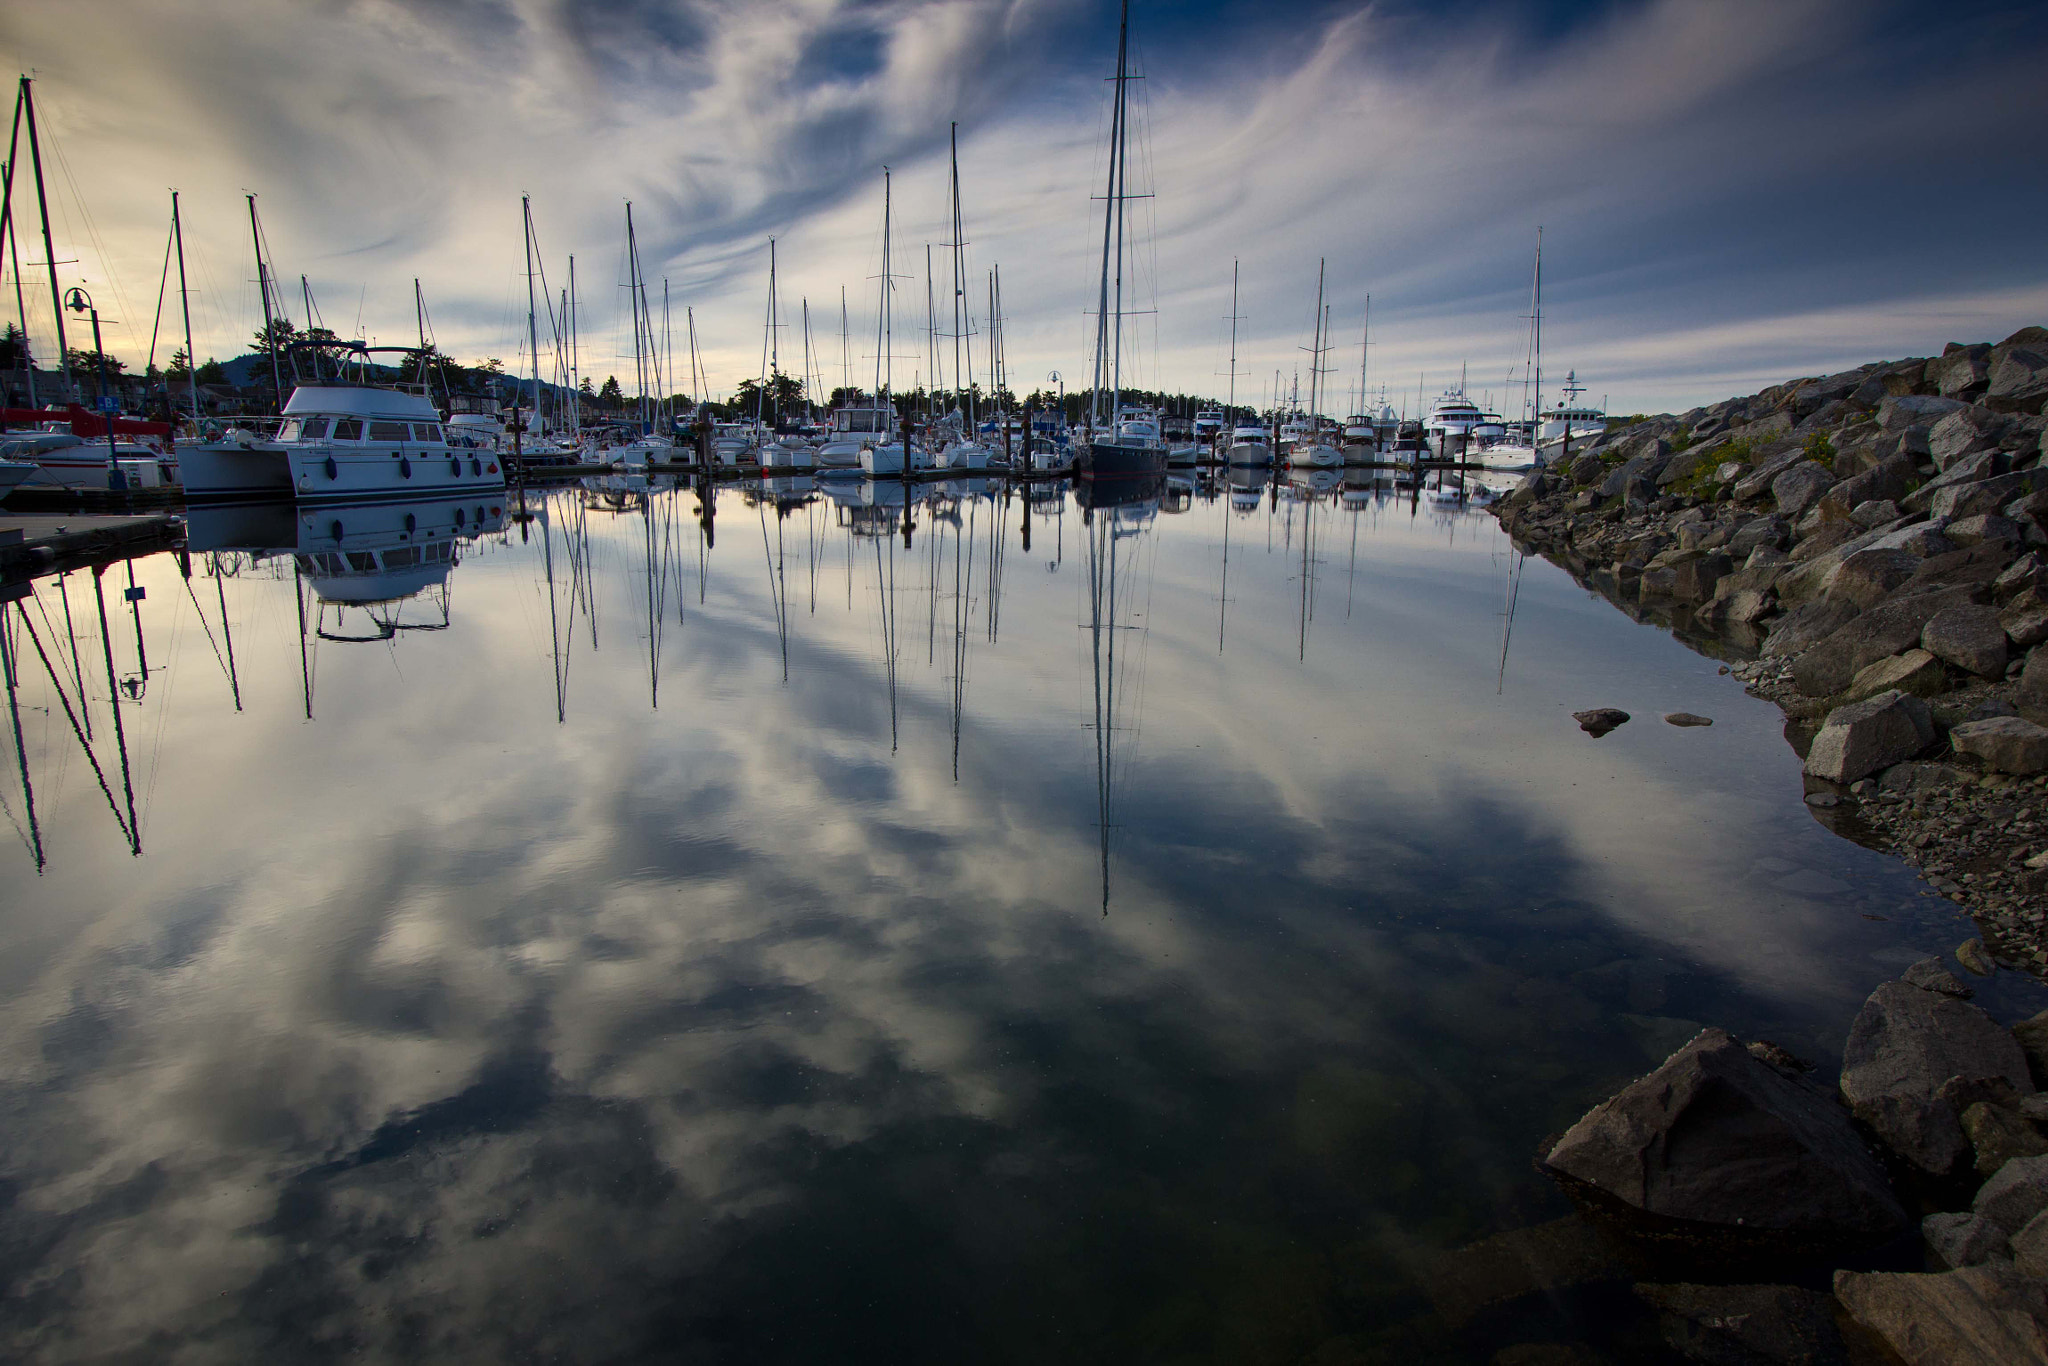 Photograph Docks by Nathan Kroeker on 500px